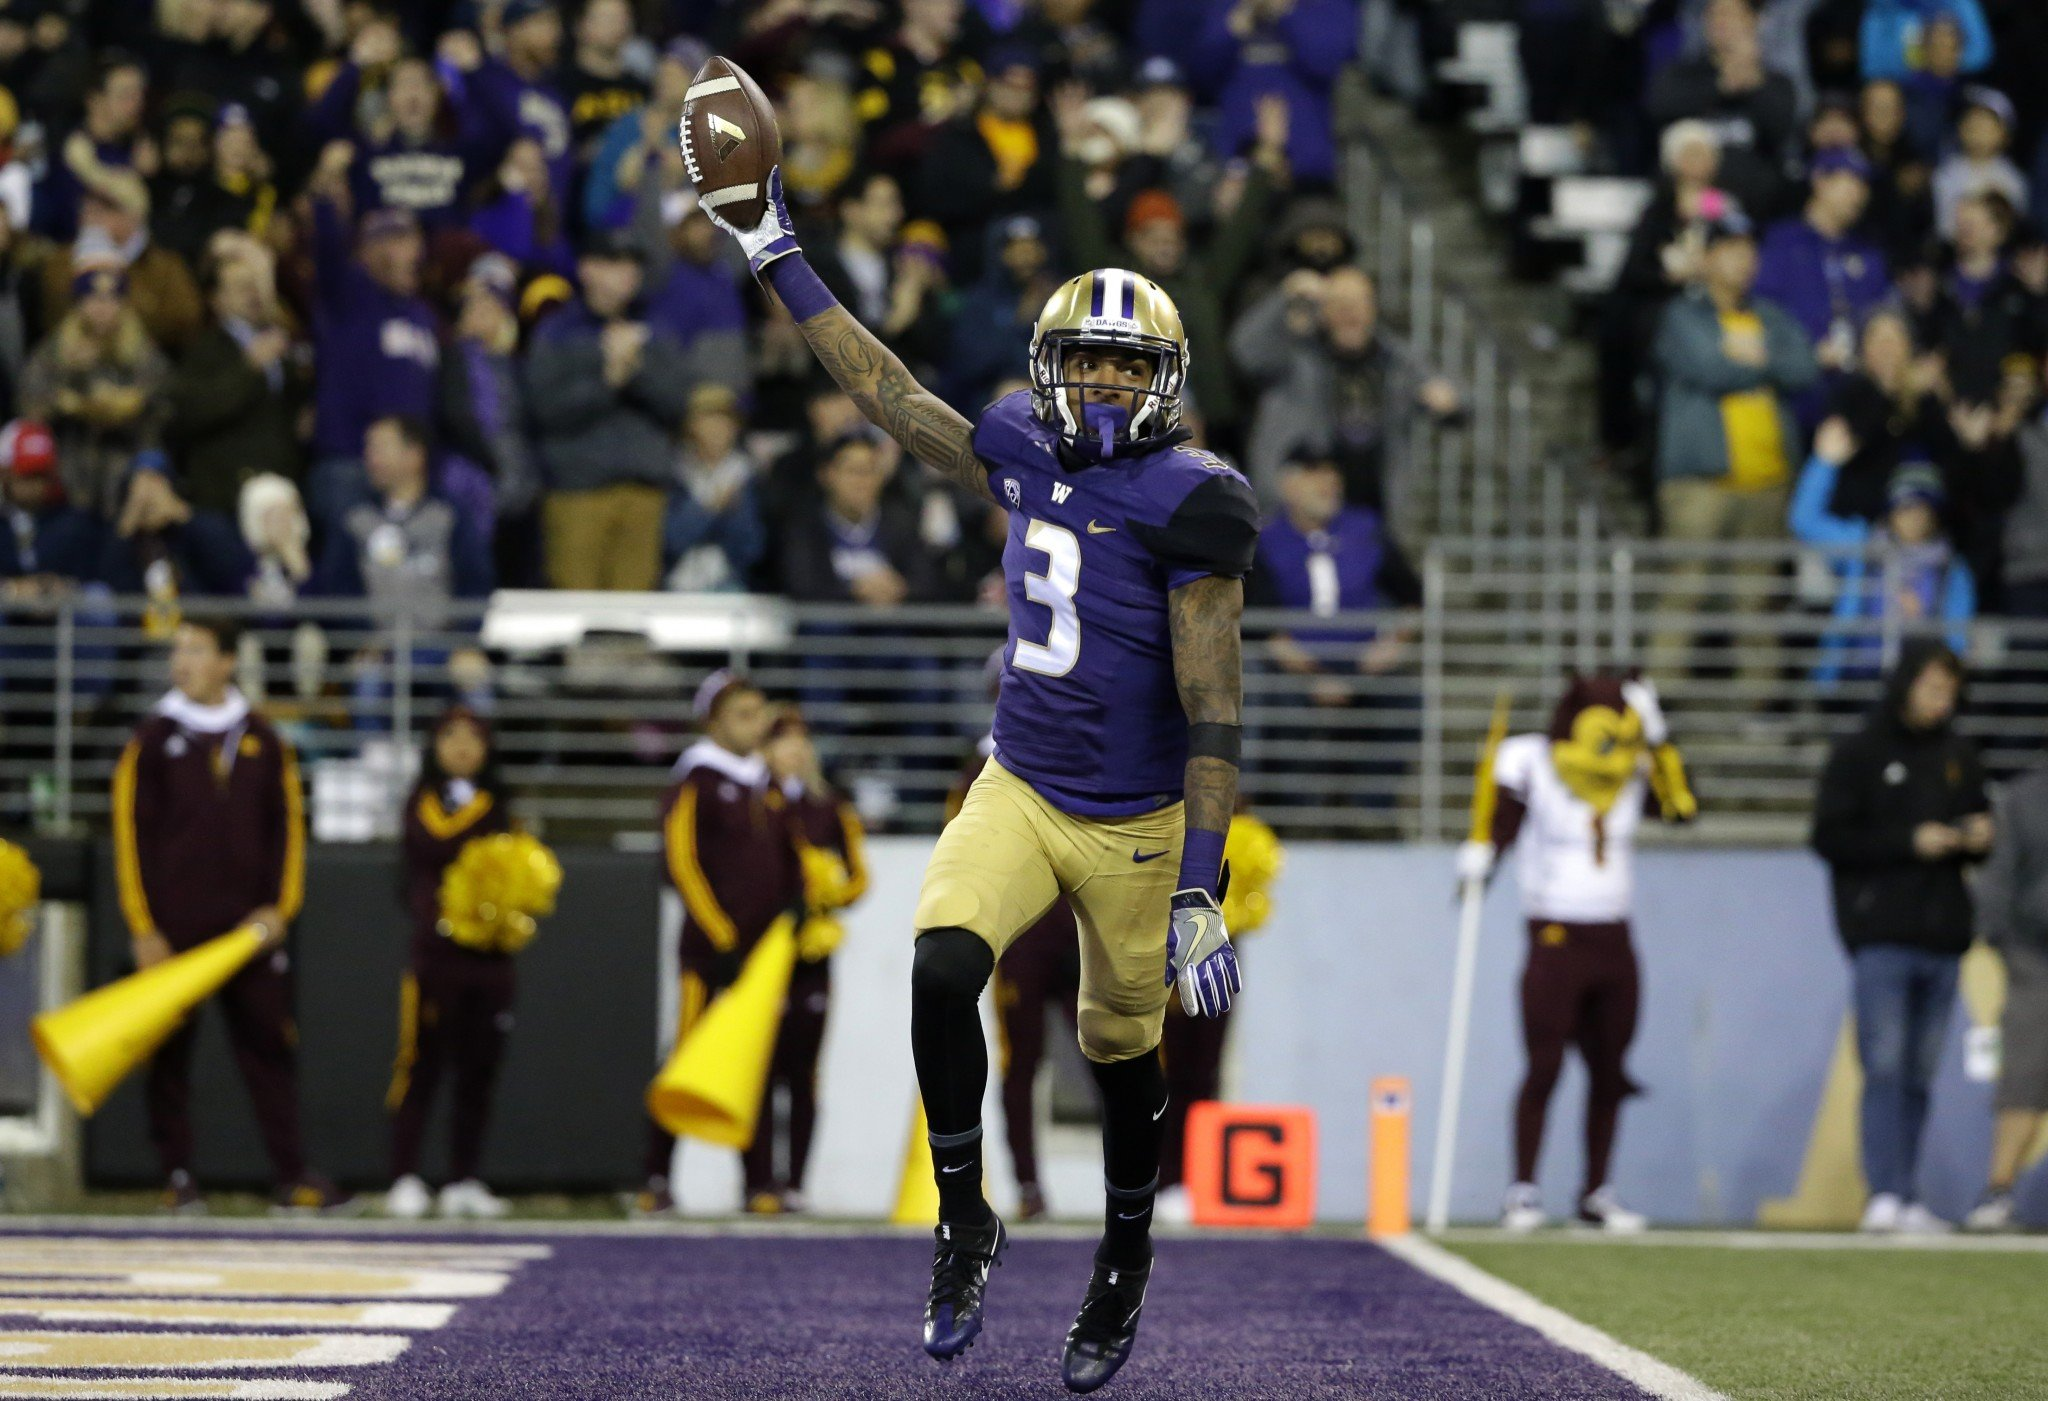 Washington defensive back Darren Gardenhire celebrates after recovering a fumble Saturday against Arizona State. (AP Photo/Ted S. Warren)